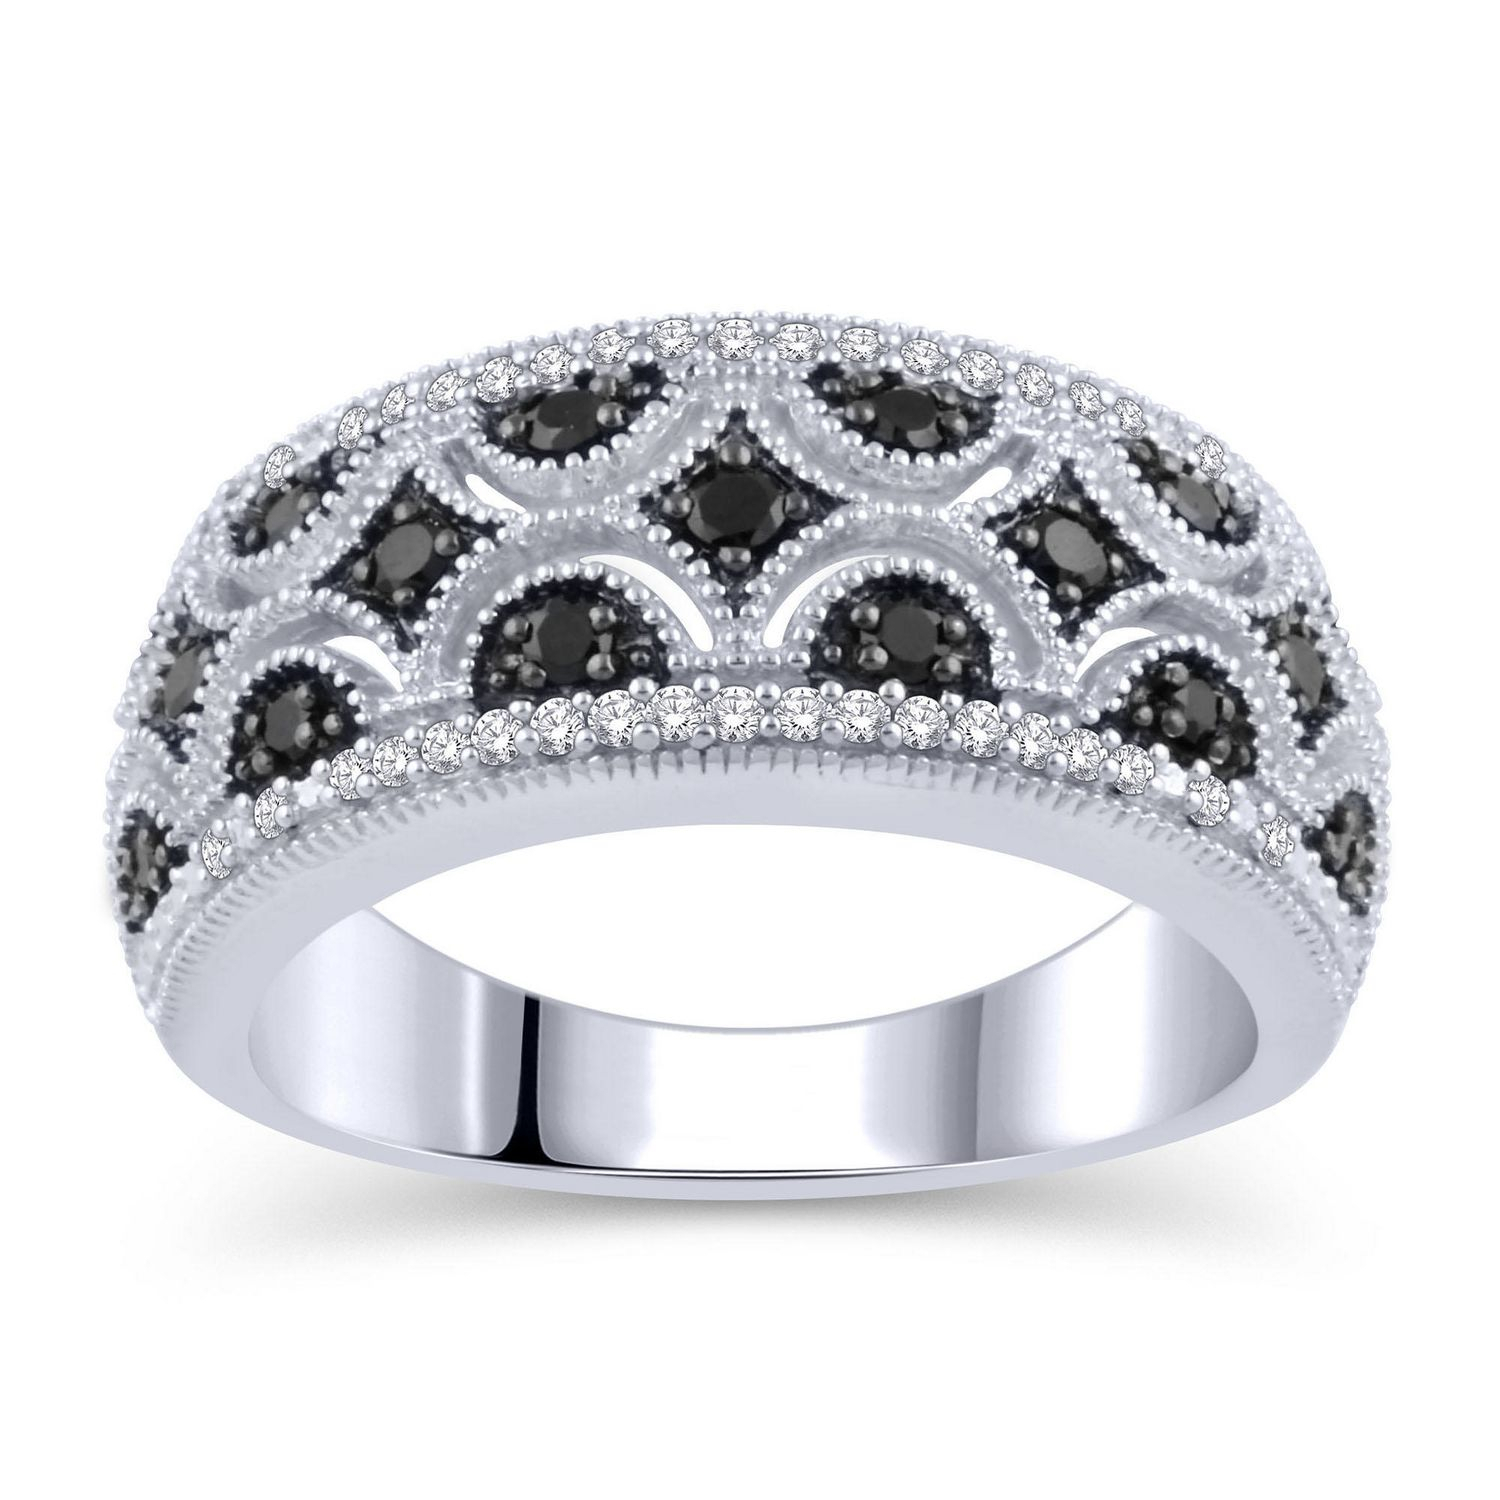 Featured Photo of Enhanced Black And White Diamond Vintage Style Anniversary Bands In Sterling Silver